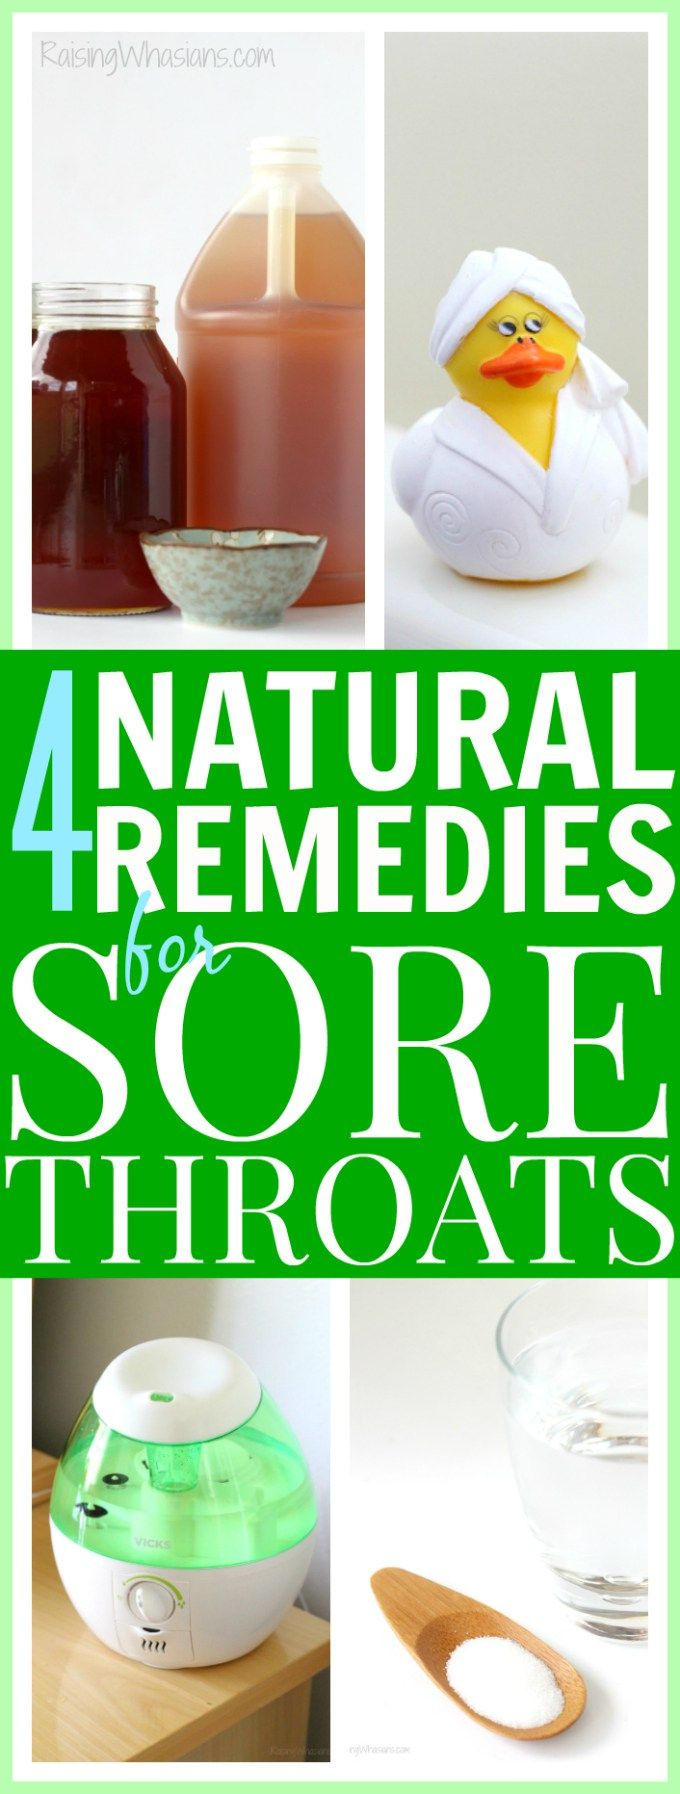 4 Ways to Naturally Ease a Sore Throat. Natural home remedies for a sore throat #VicksHumidifier #IC #ad - Raising Whasians